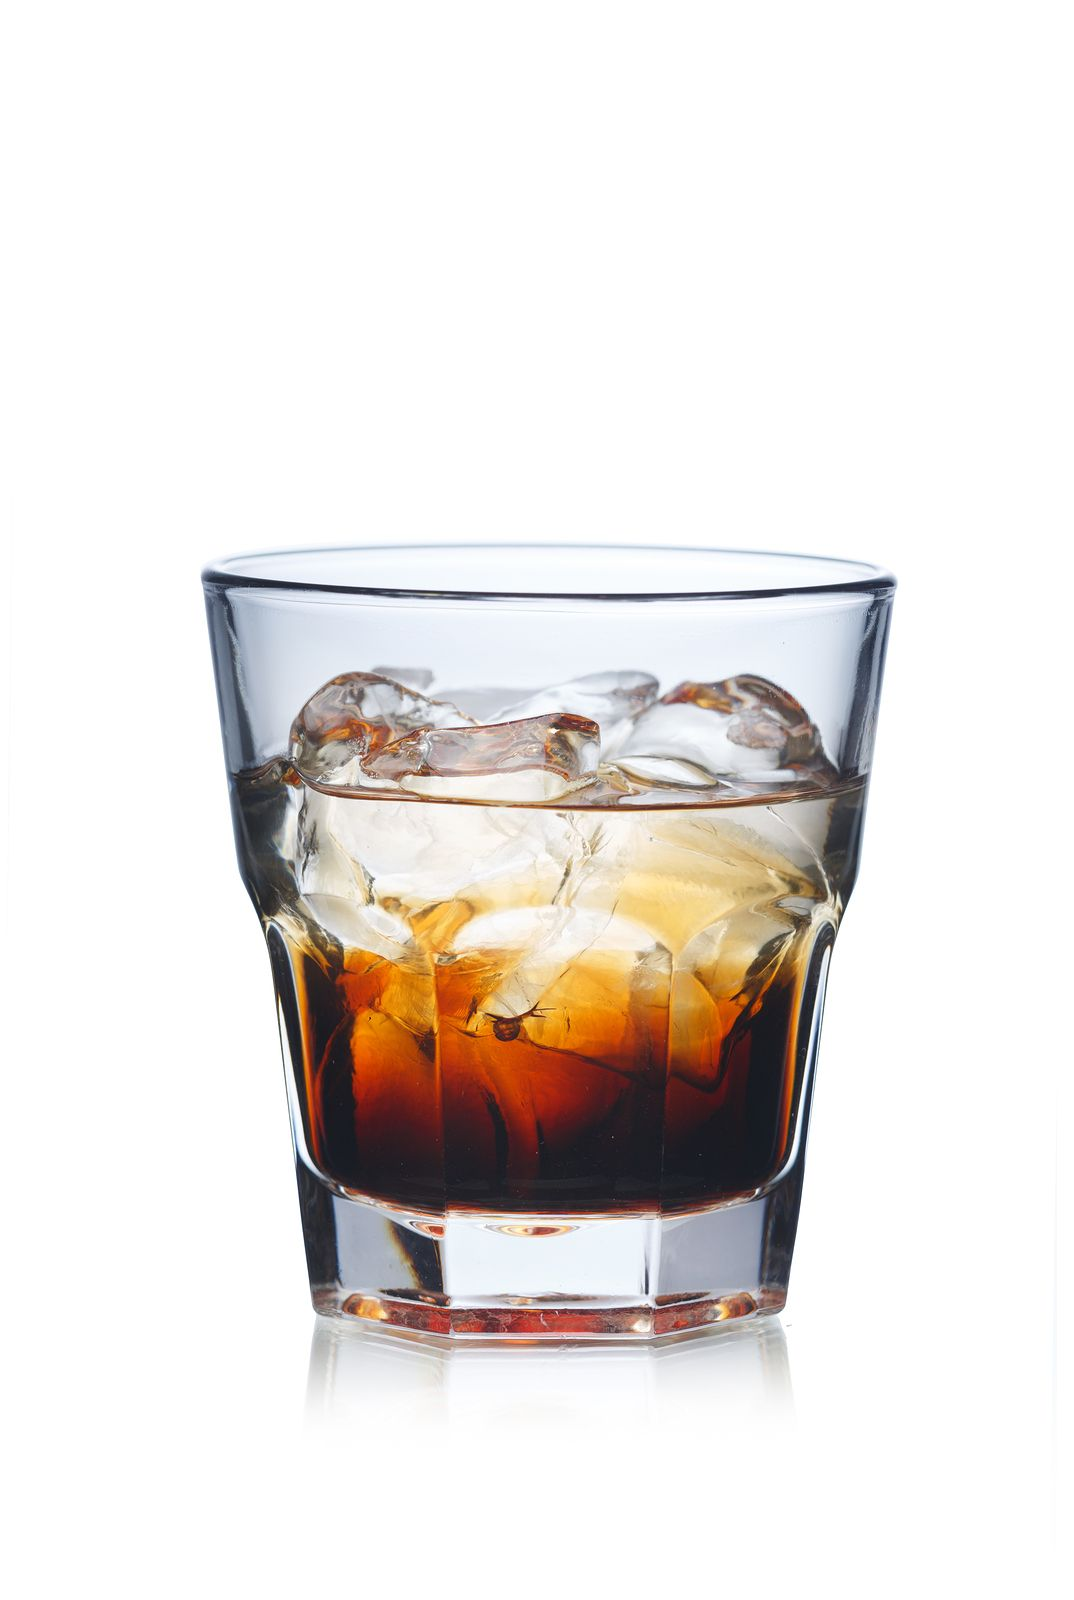 Black Russian Cocktail recipe made with Kahlua Coffee